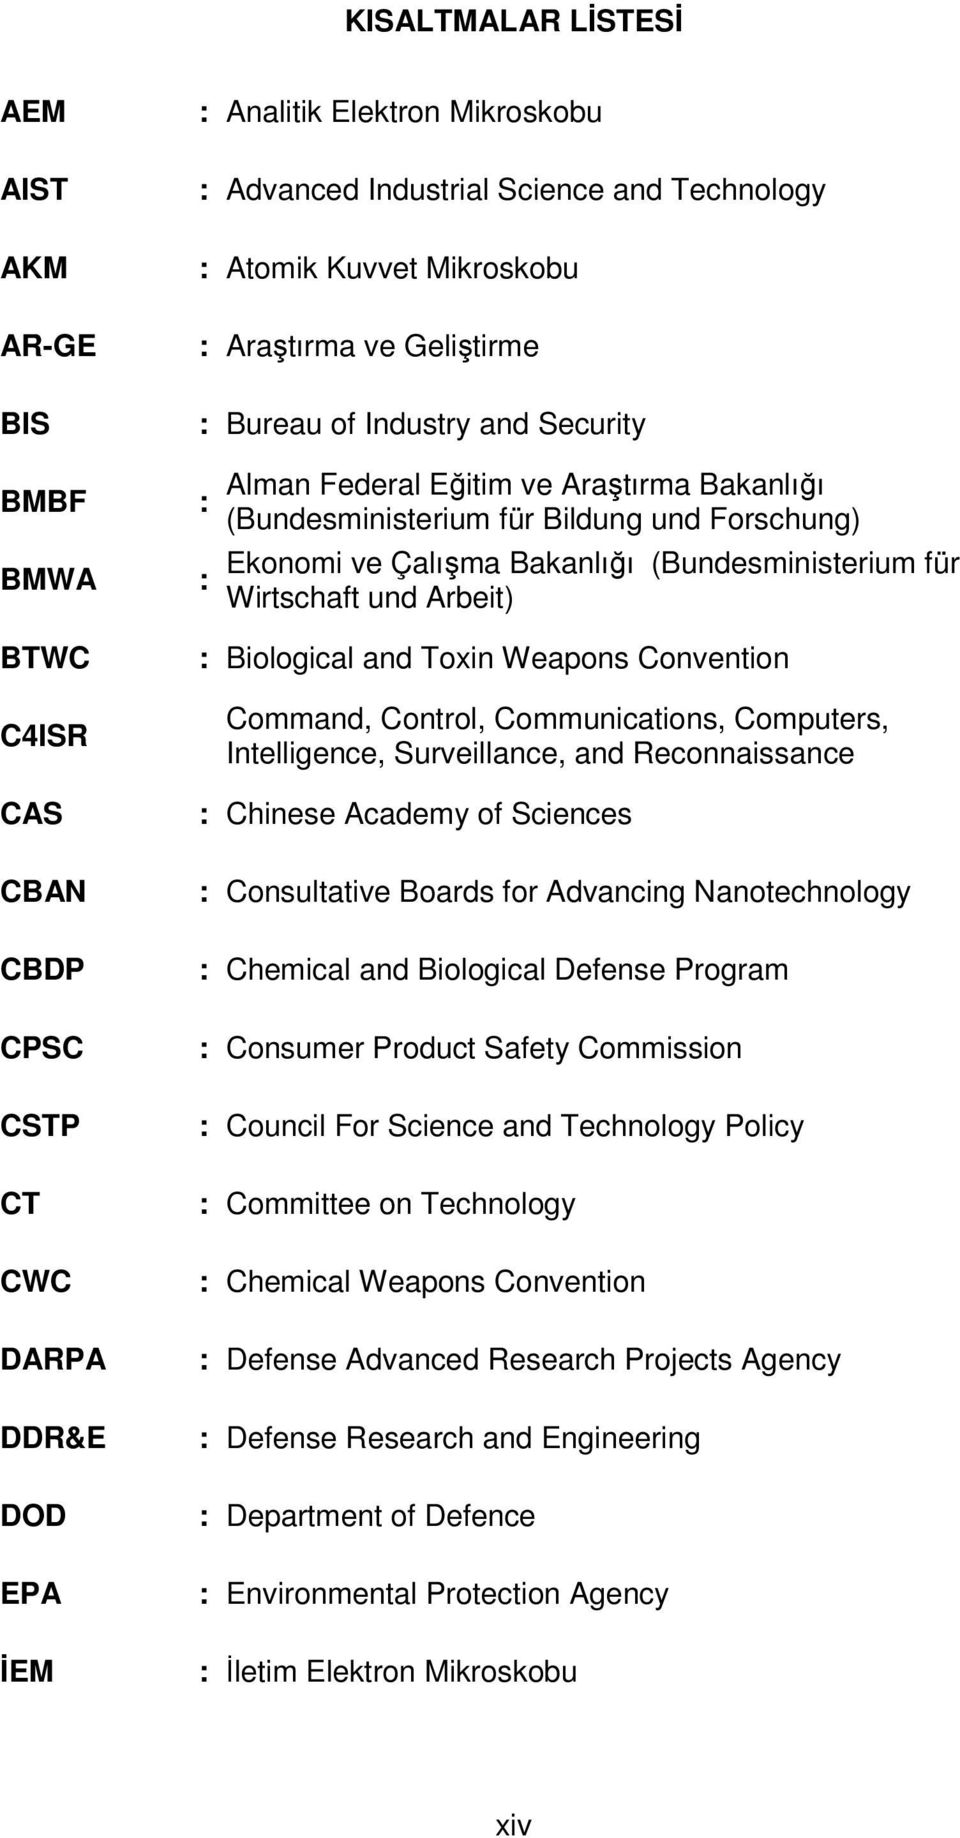 CAS CBAN CBDP CPSC CSTP CT CWC DARPA DDR&E DOD EPA İEM : Biological and Toxin Weapons Convention Command, Control, Communications, Computers, Intelligence, Surveillance, and Reconnaissance : Chinese